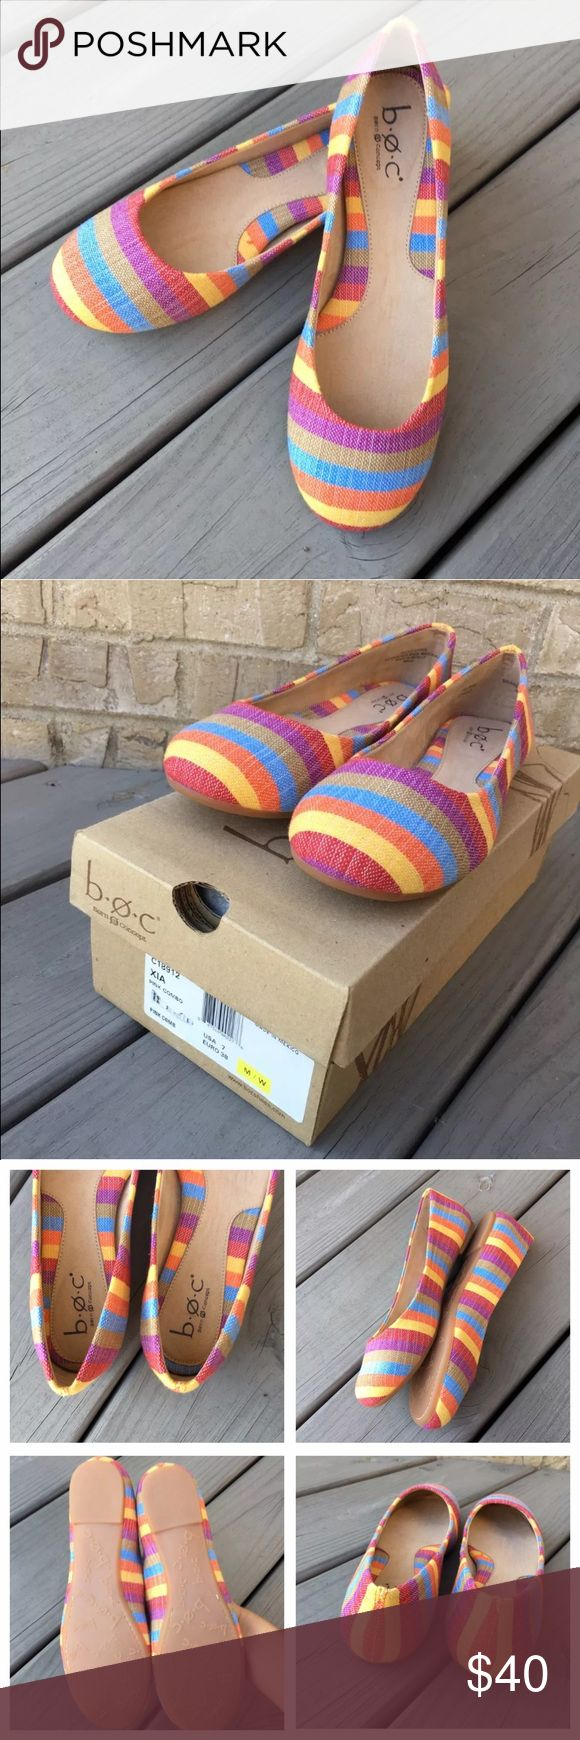 NWT b.o.c. Striped Flats XIA Size 7M These striped flats will match practically any summer outfit! Super cute and comfy! New with box BORN BOC XIA  Pink Combo Striped Flats  Womens Shoes Size 7 M / W b.o.c. Shoes Flats & Loafers